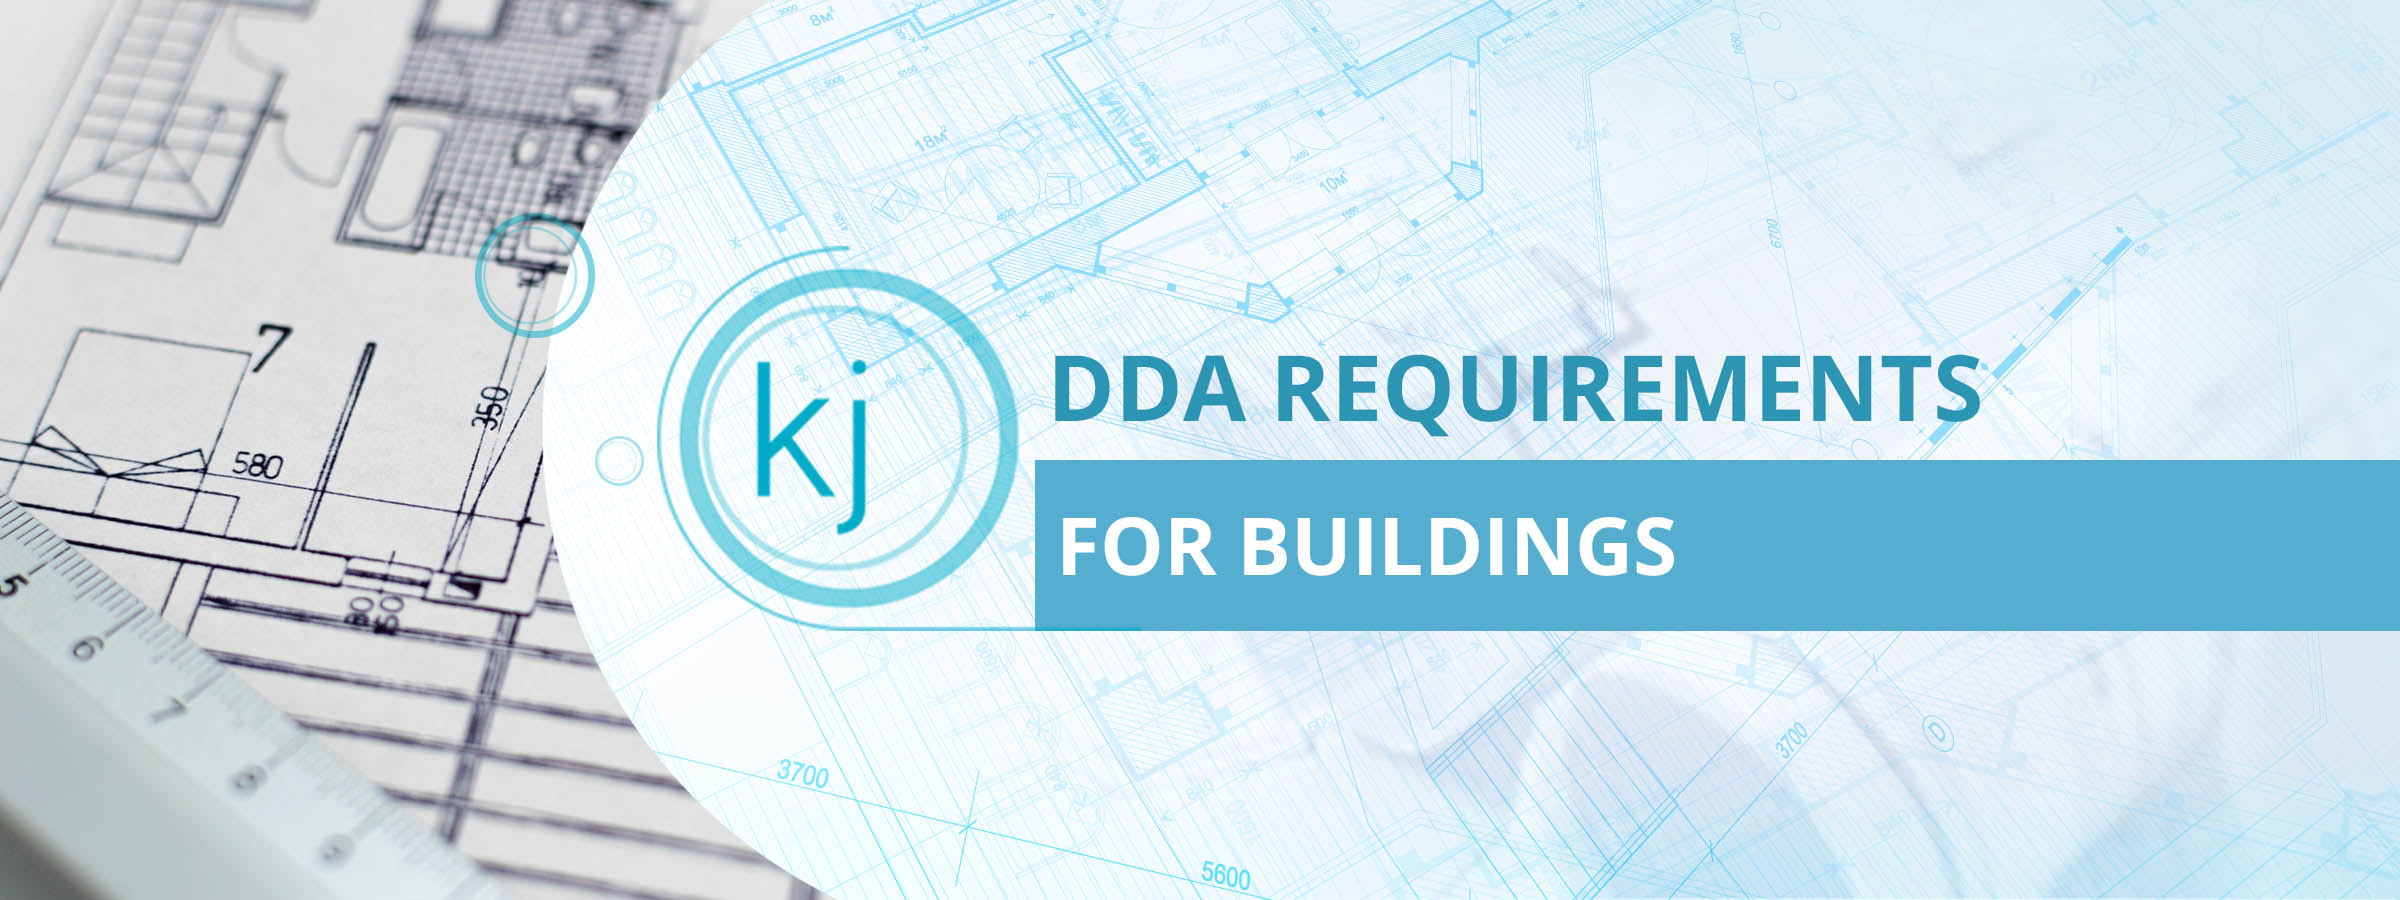 DDA requirements for buildings